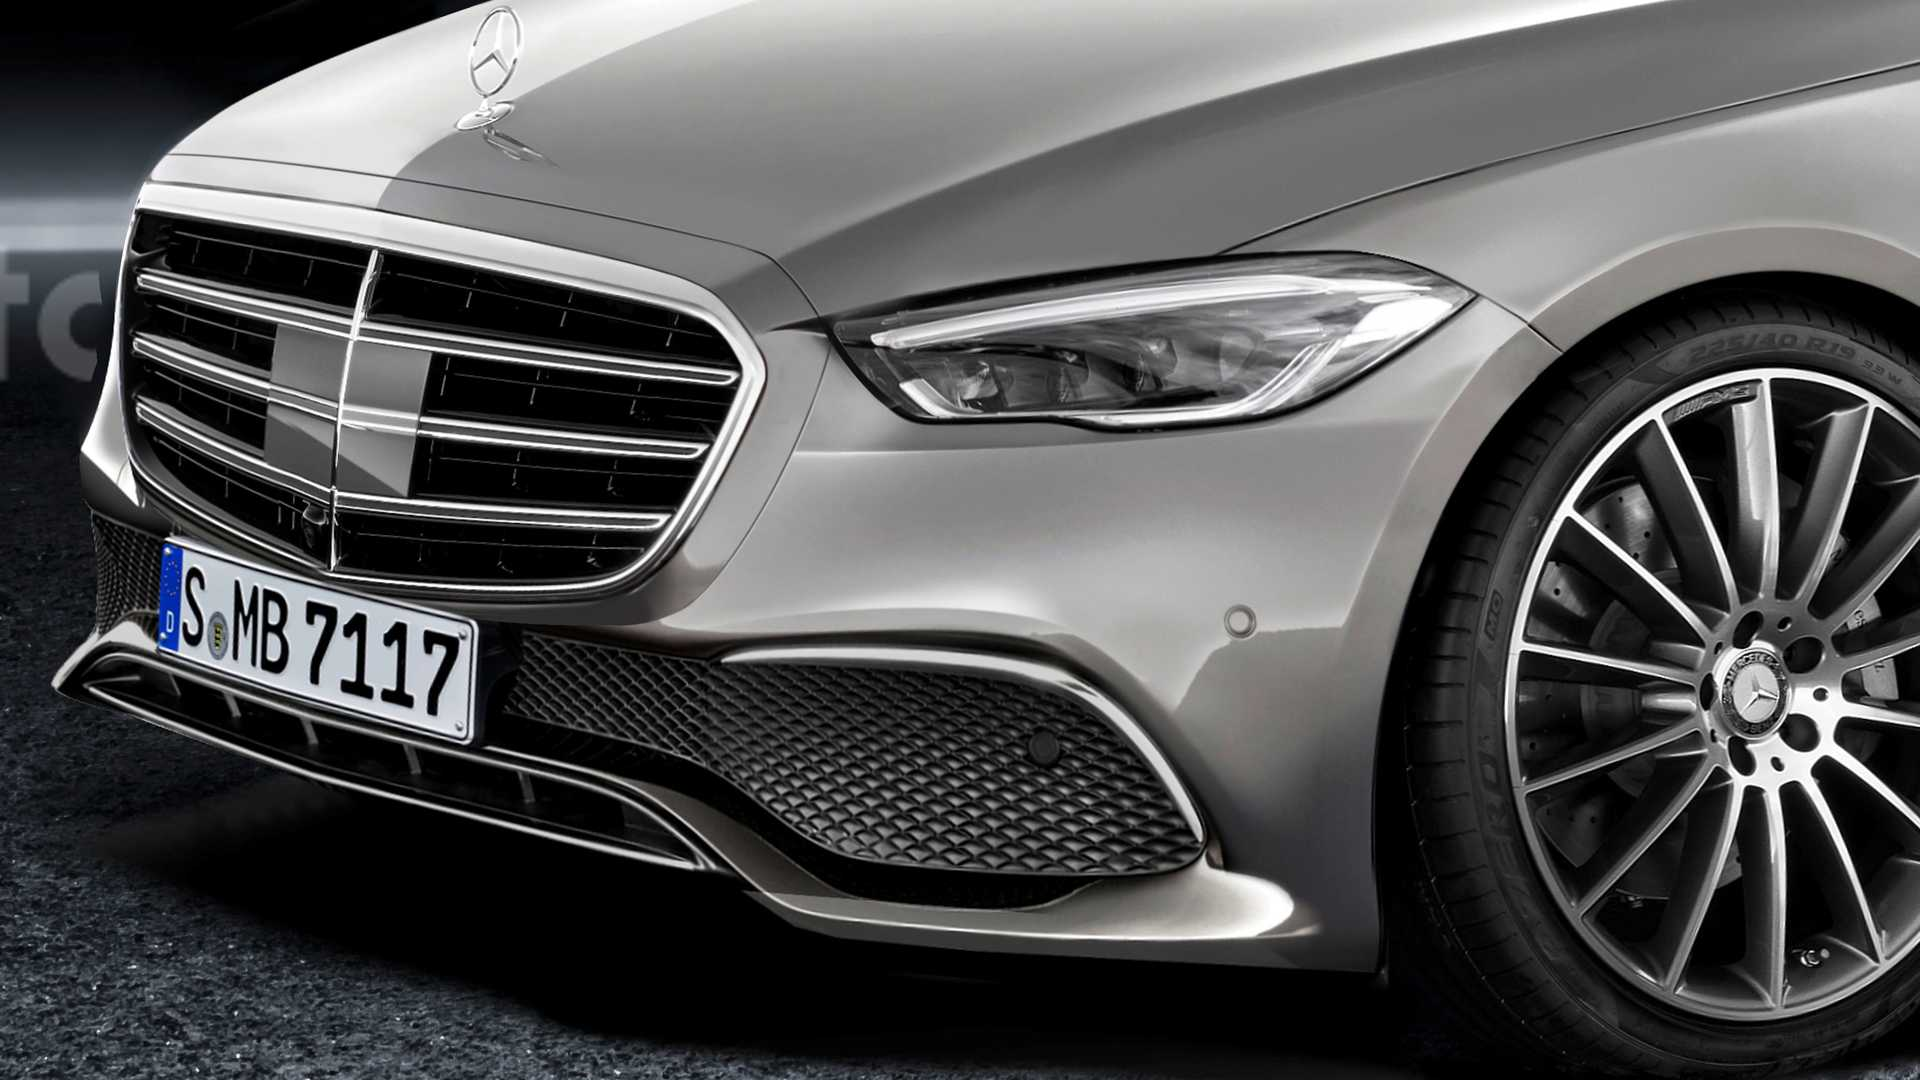 2021 Mercedes S-Class Looks Sleek And Stylish In Exclusive ...